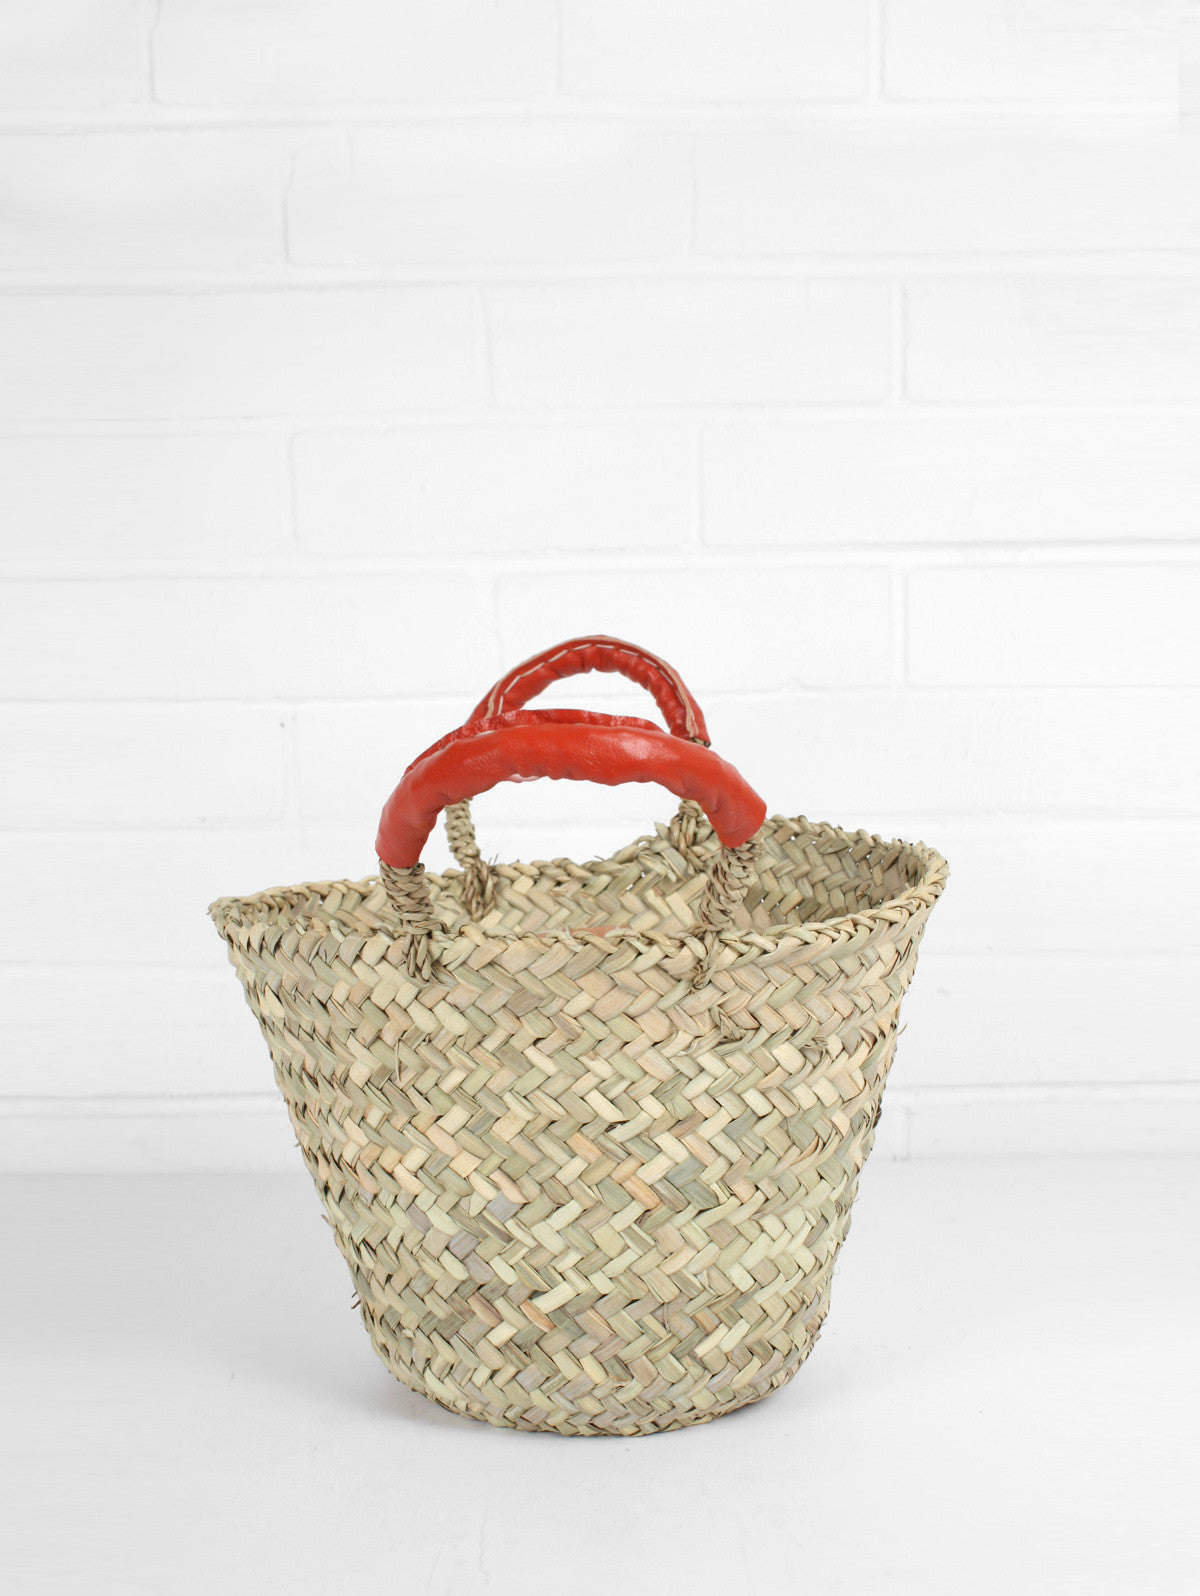 Beldi Leather Baskets, Orange